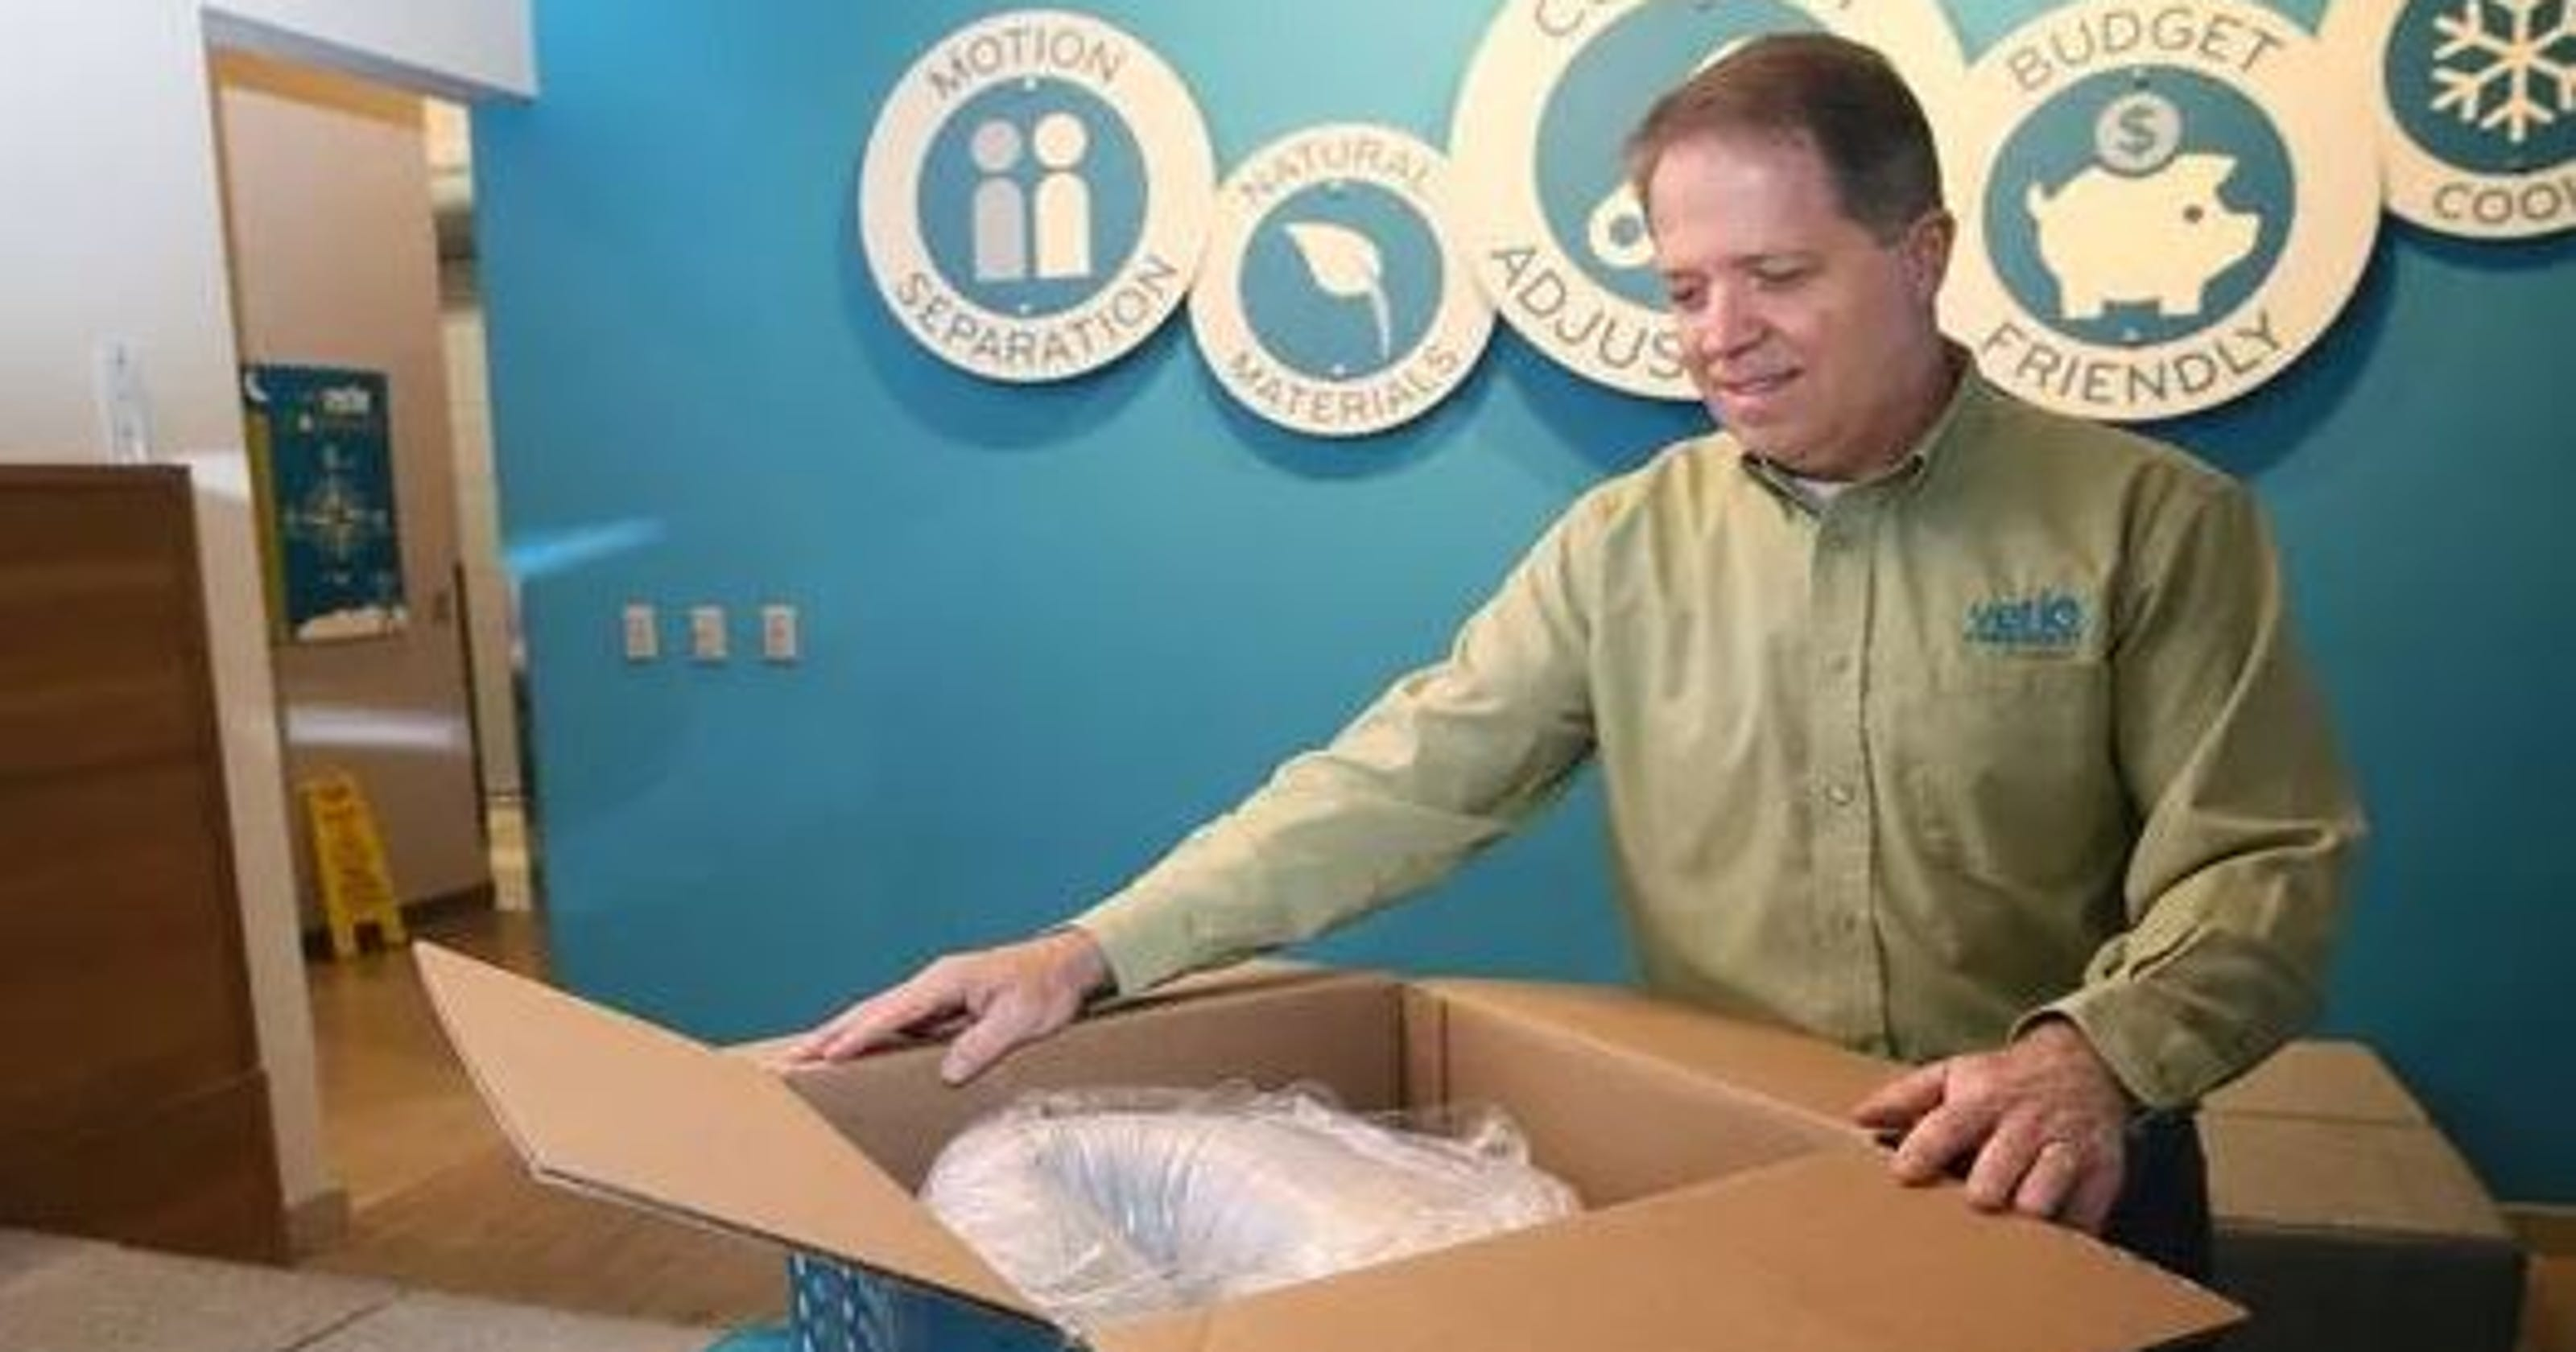 Online Sales Boom For Mattresses Squished Into Boxes